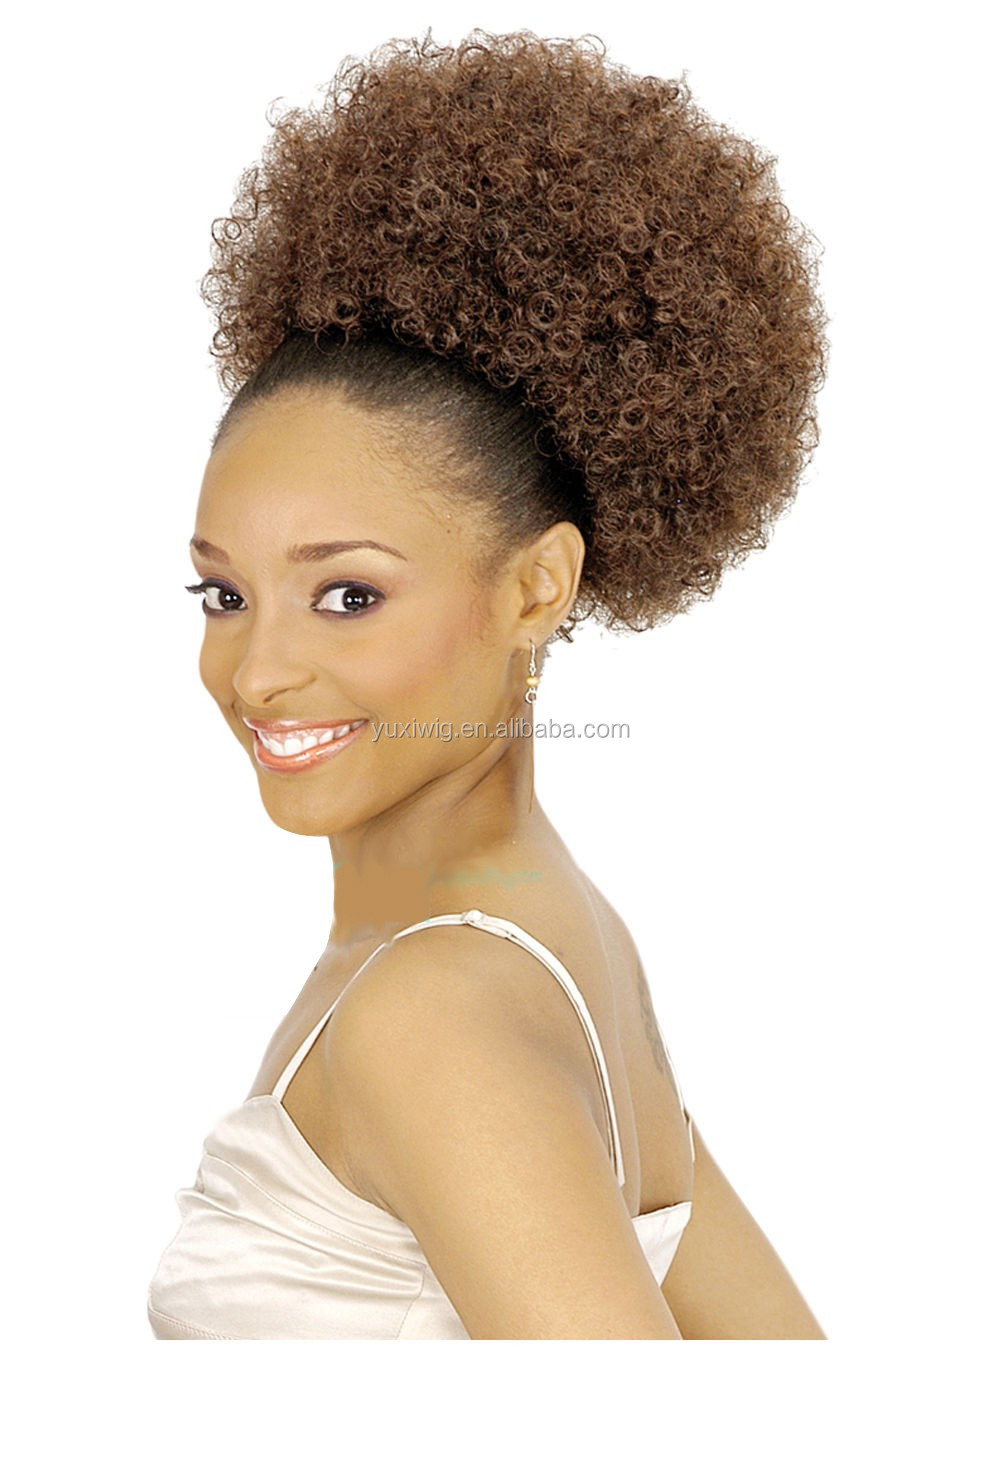 2017 afro ponytail puff in color #27 - buy afro ponytail puff